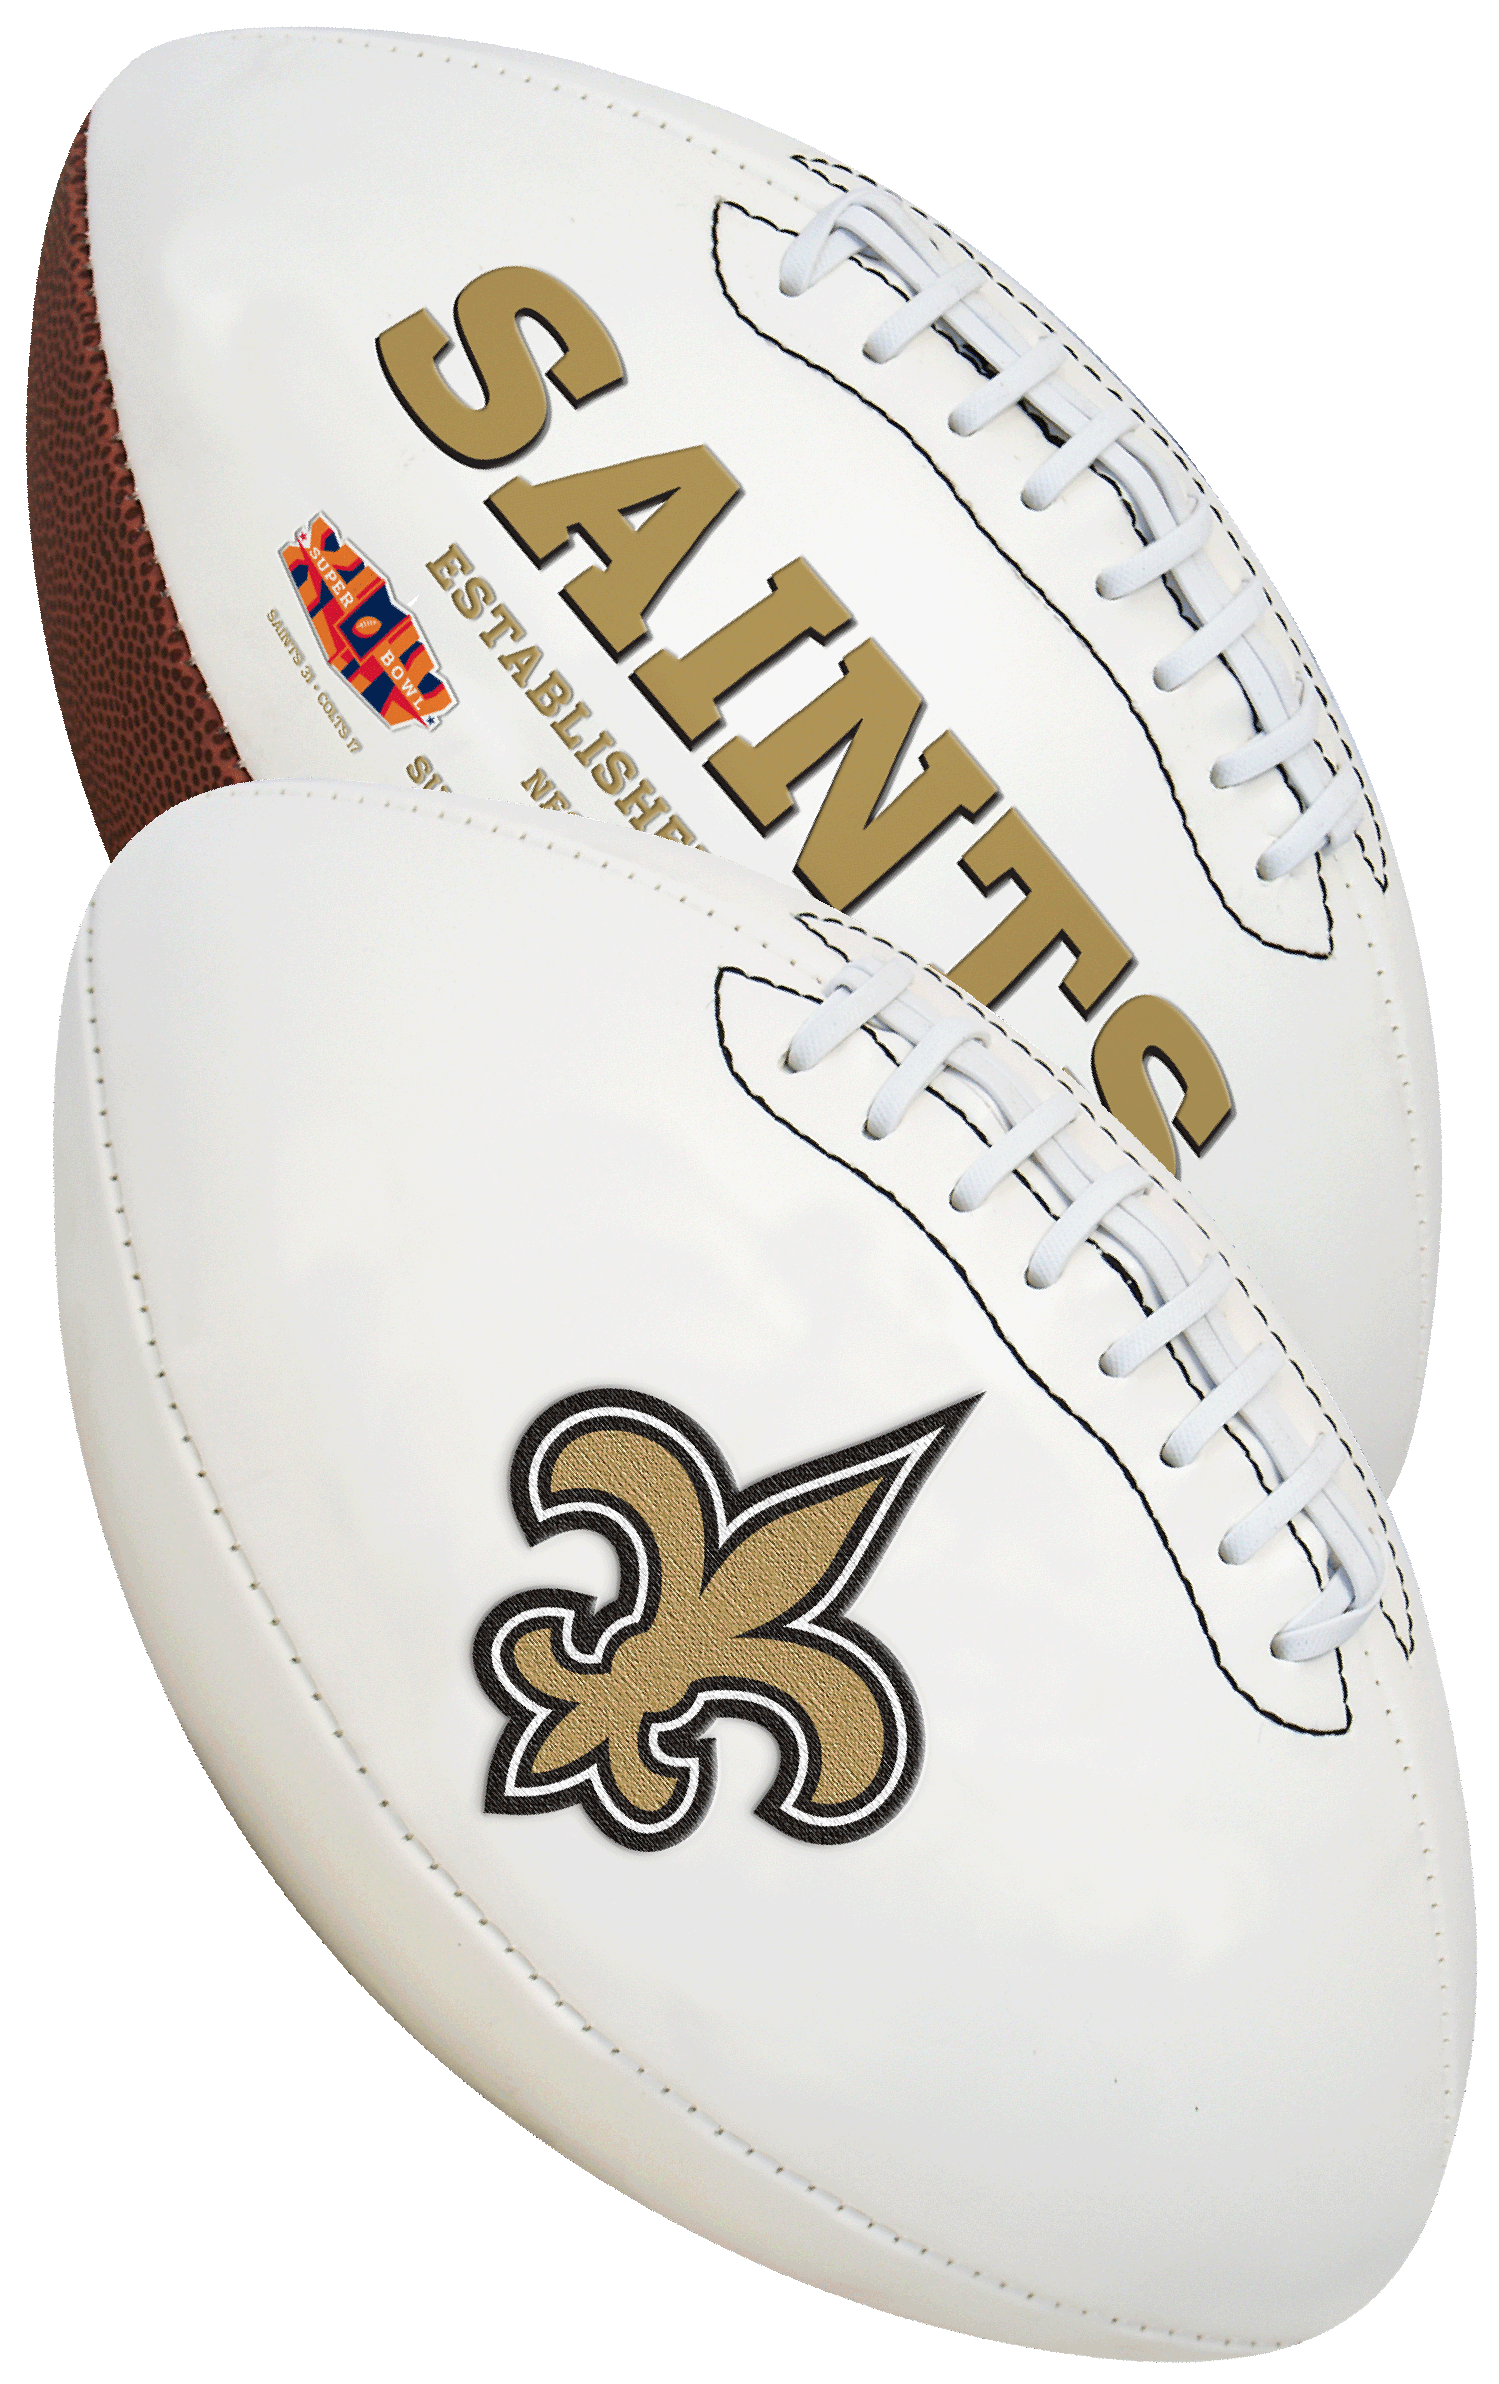 New Orleans Saints NFL Signature Series Full Size Football